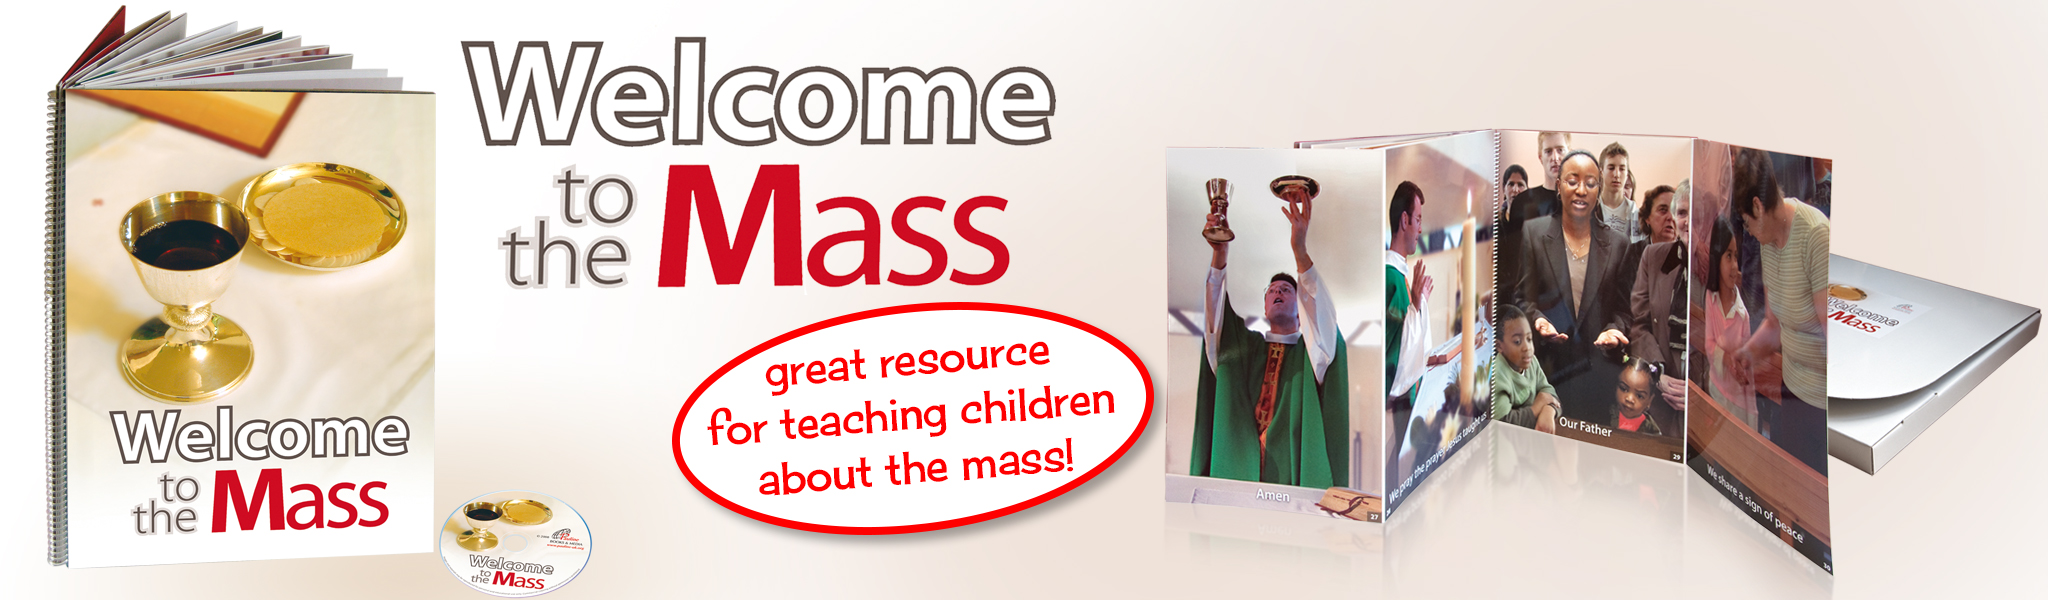 Welcome to the Mass Book by Pauline Books & Media